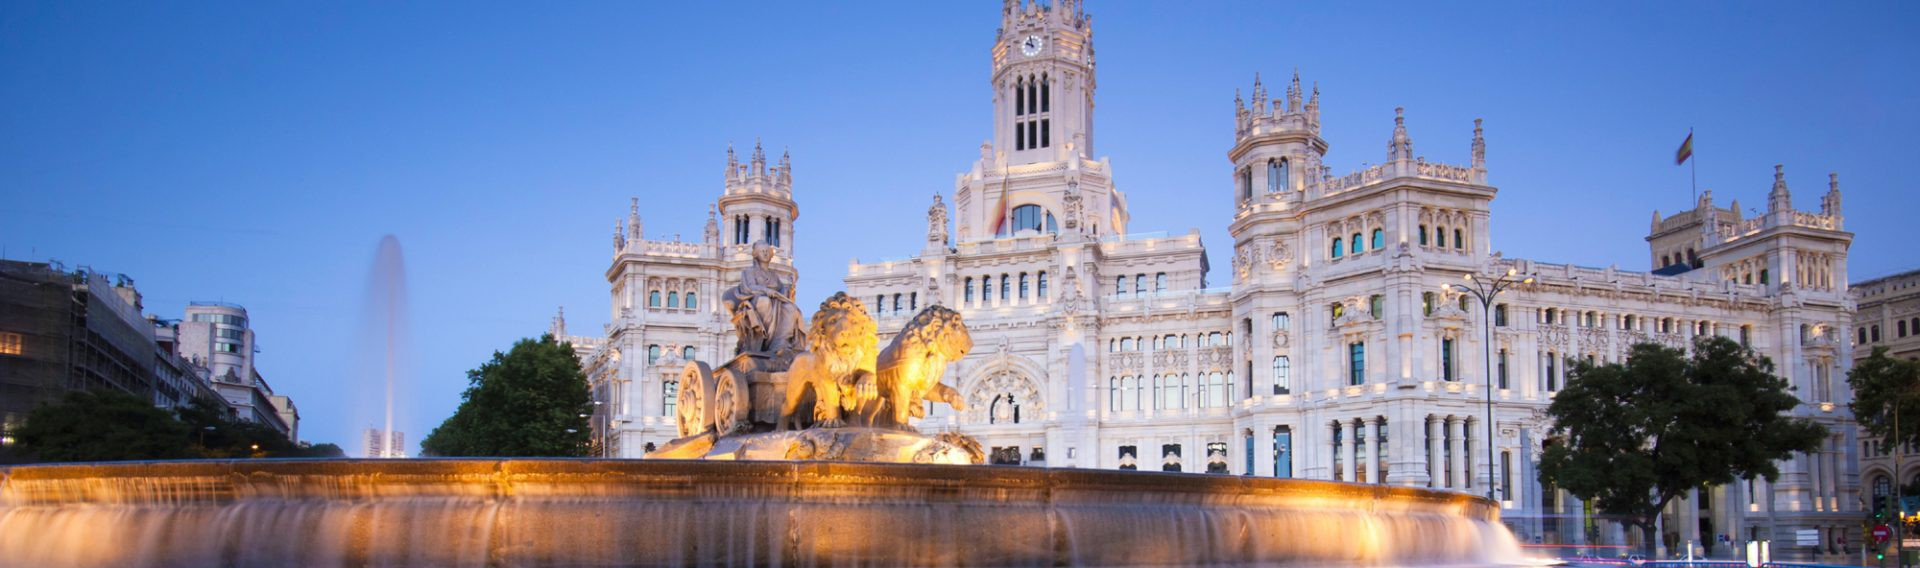 Plaza de Cibeles, Madrid, Spain